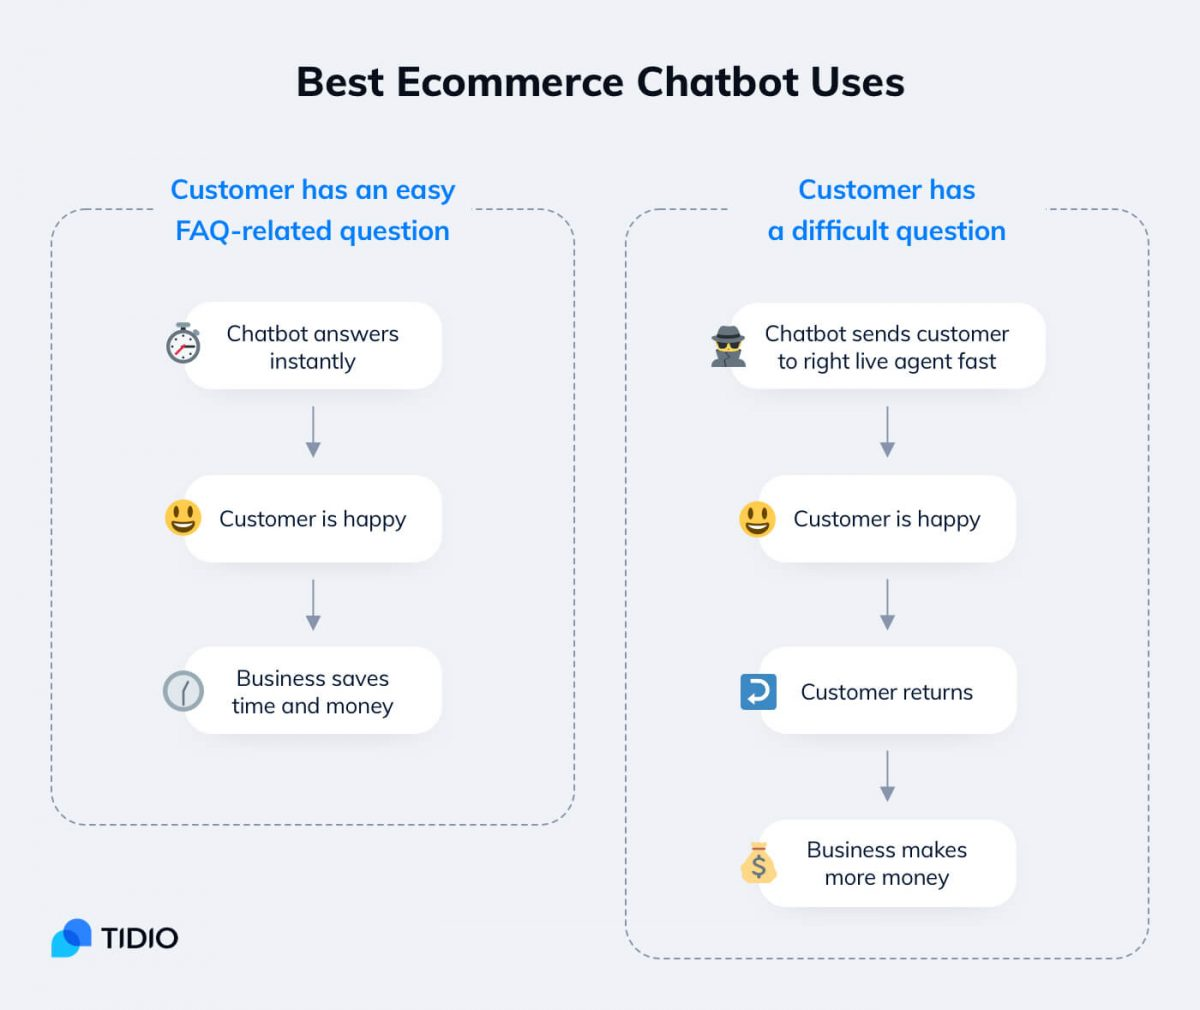 Best use cases for eCommerce chatbots